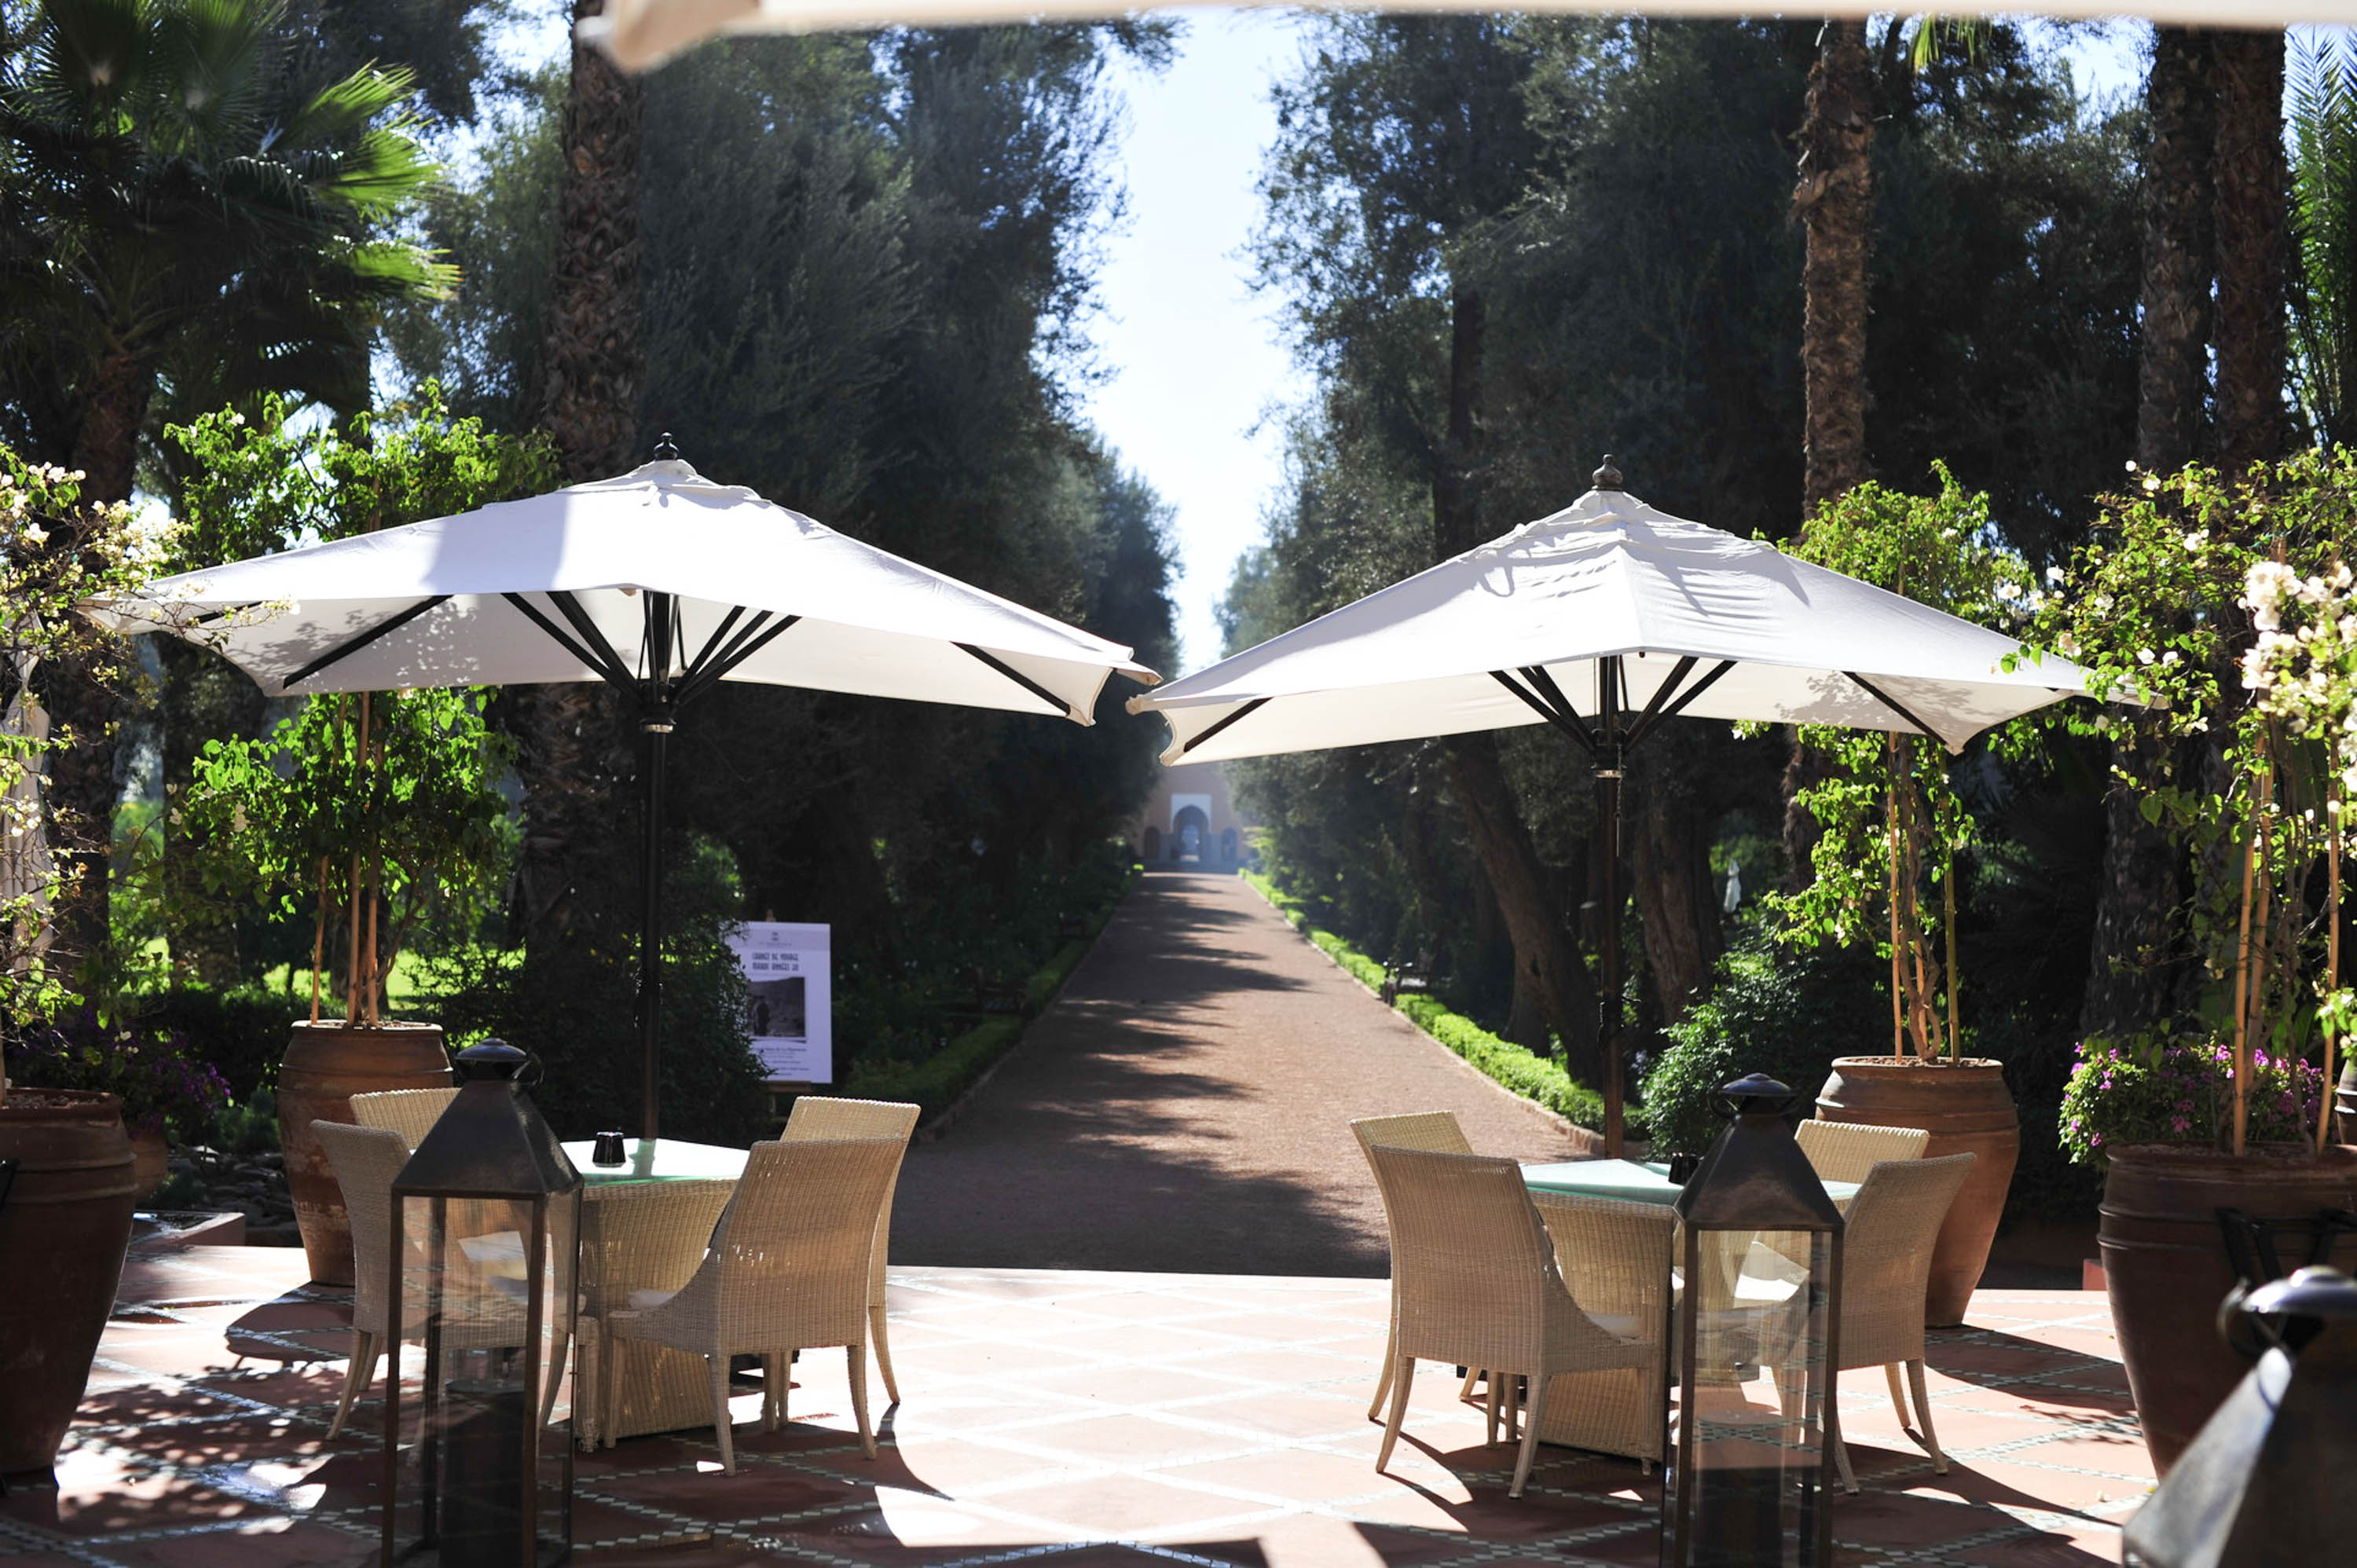 La Mamounia outdoors | Marrakech: a quick guide